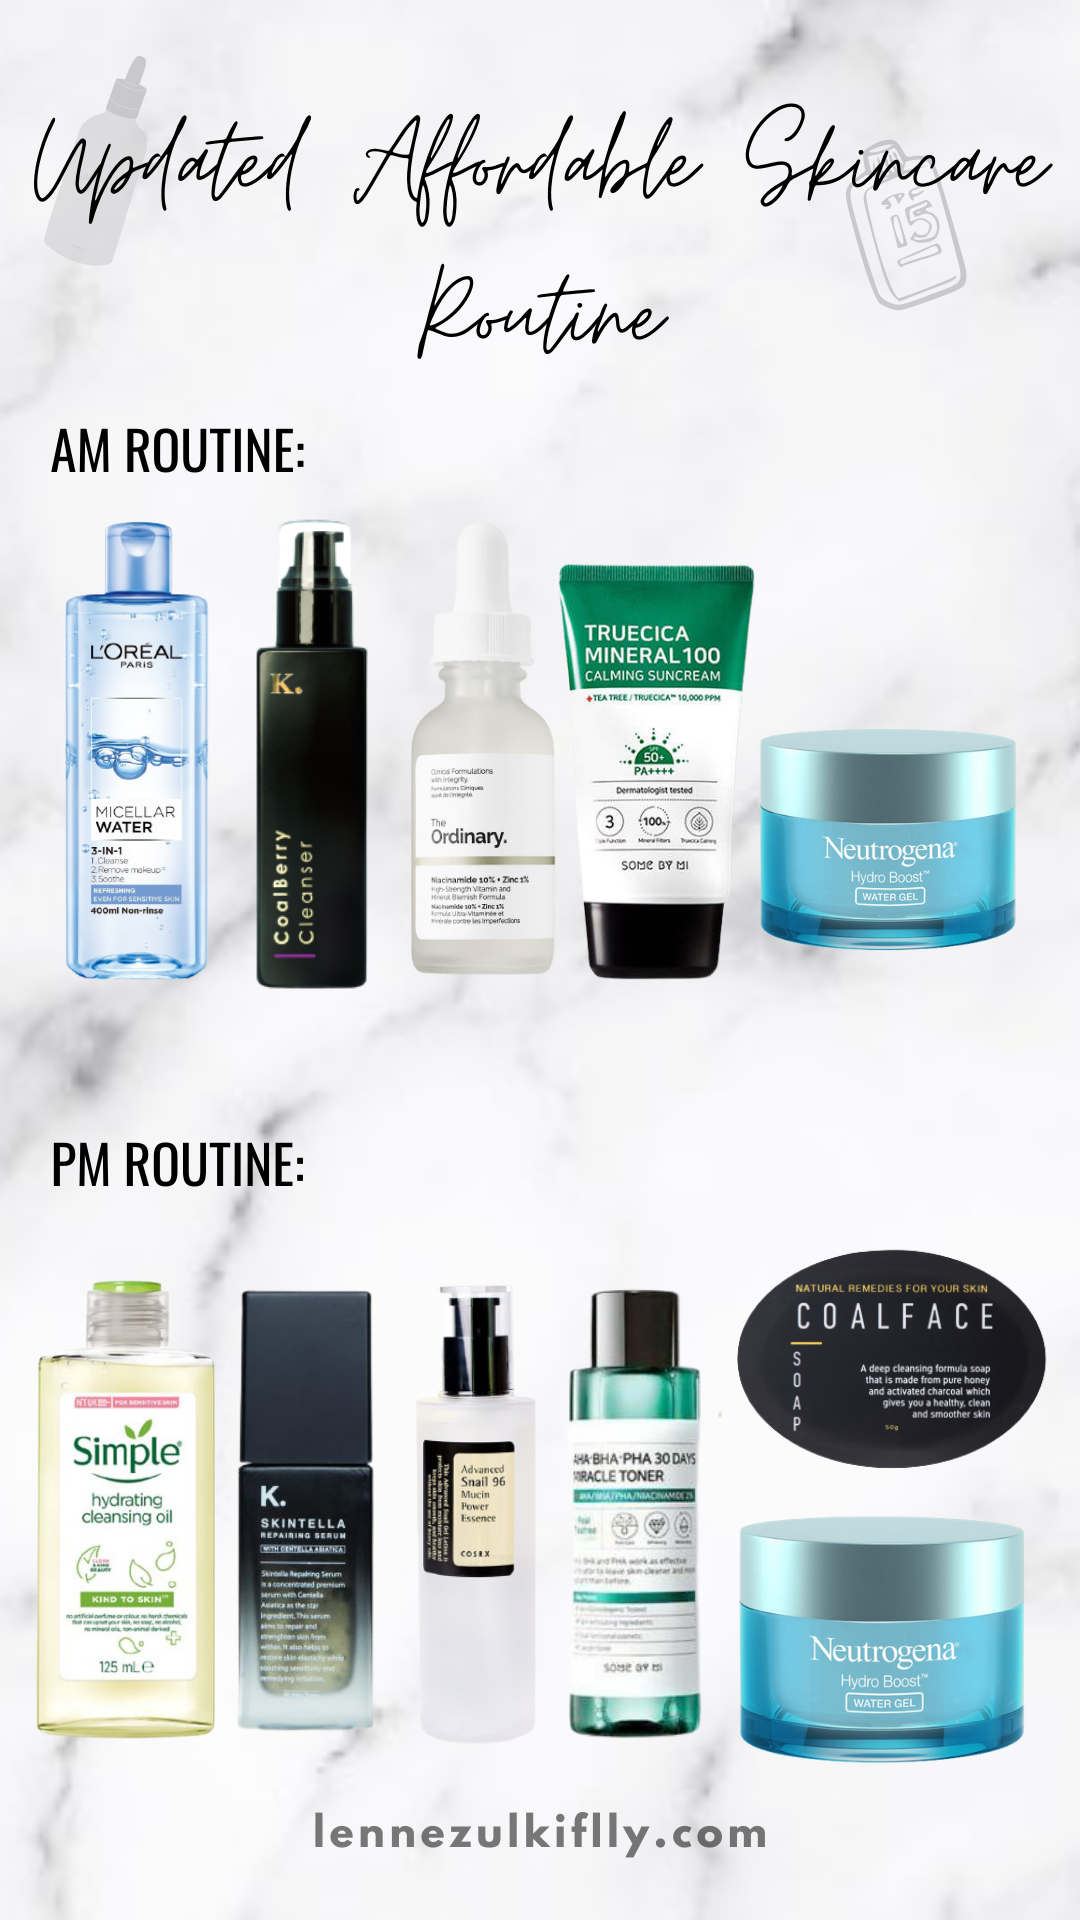 My Skincare Philosophy & Updated Skincare Routine